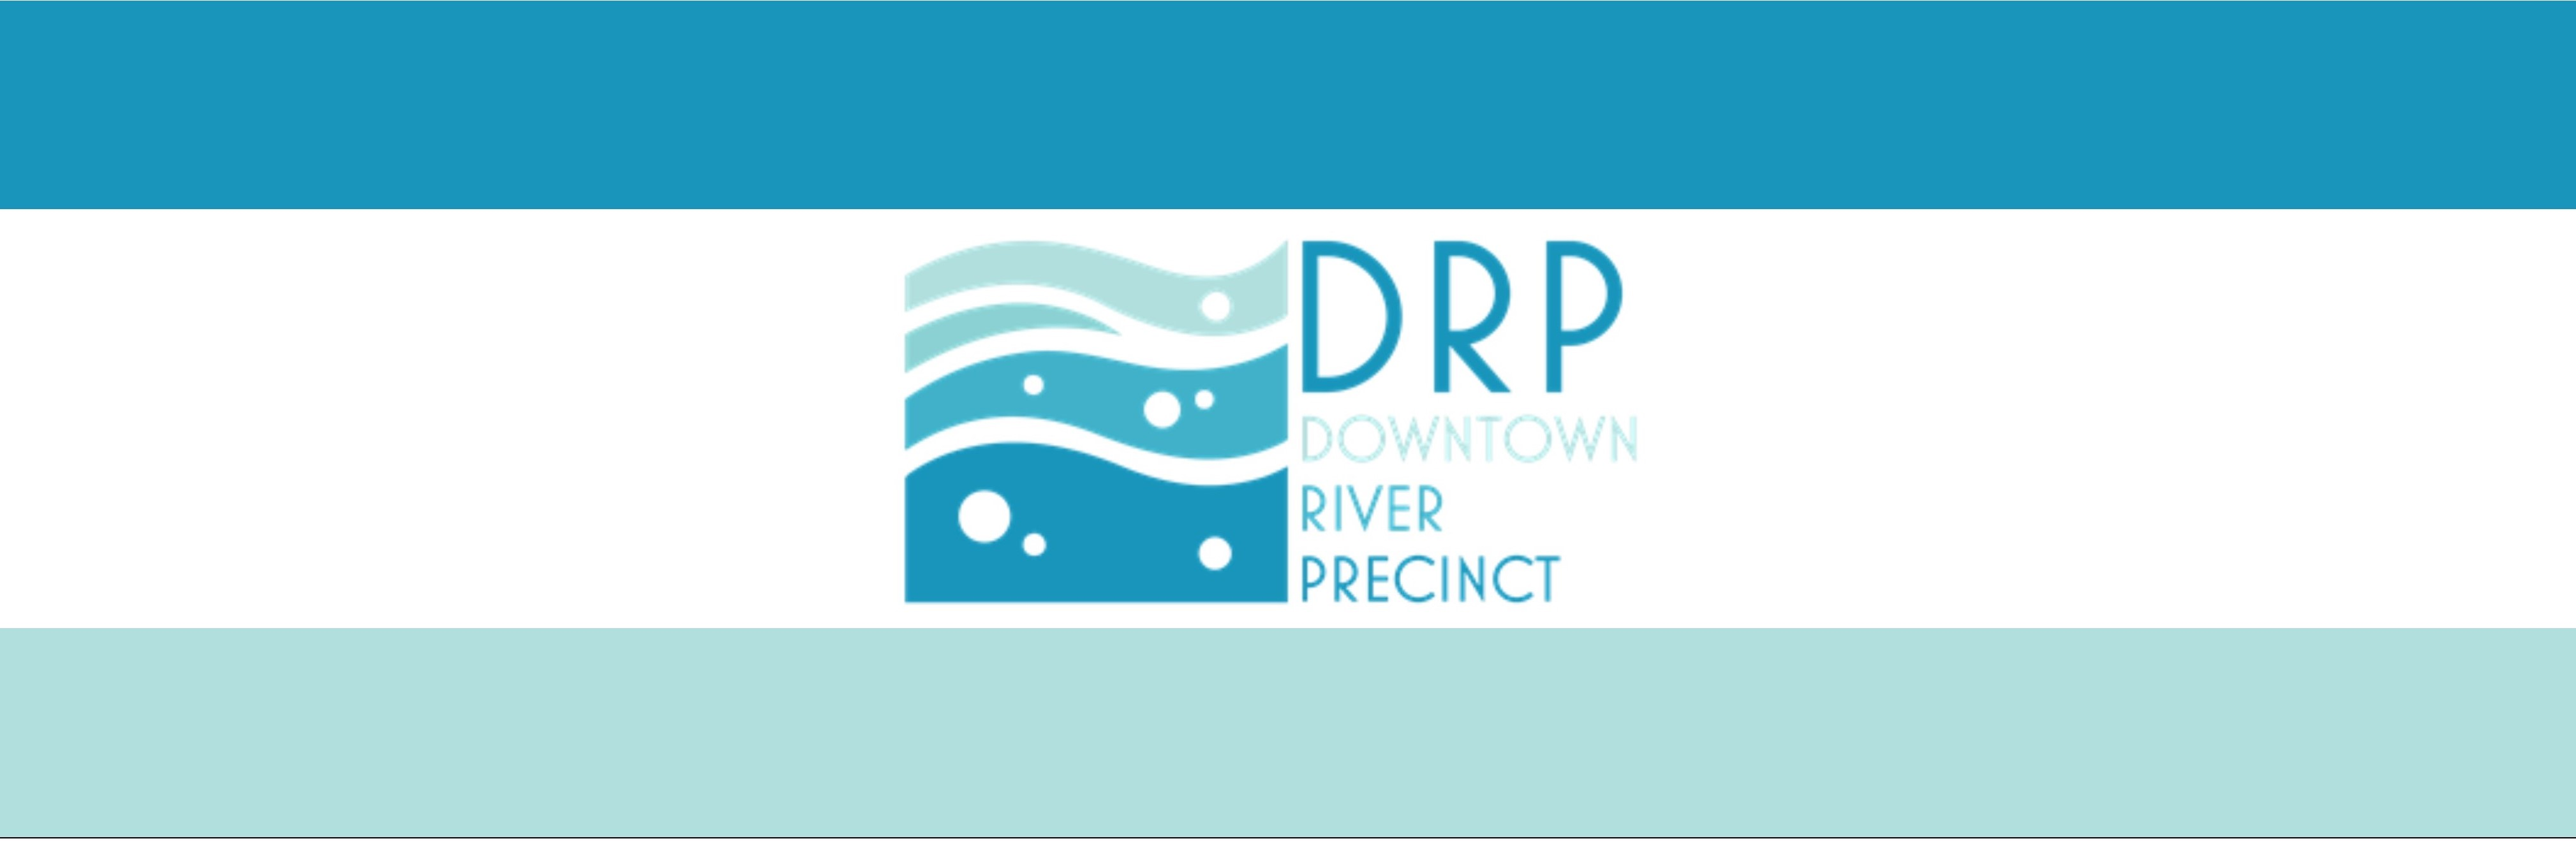 Dowtown River Precinct Header